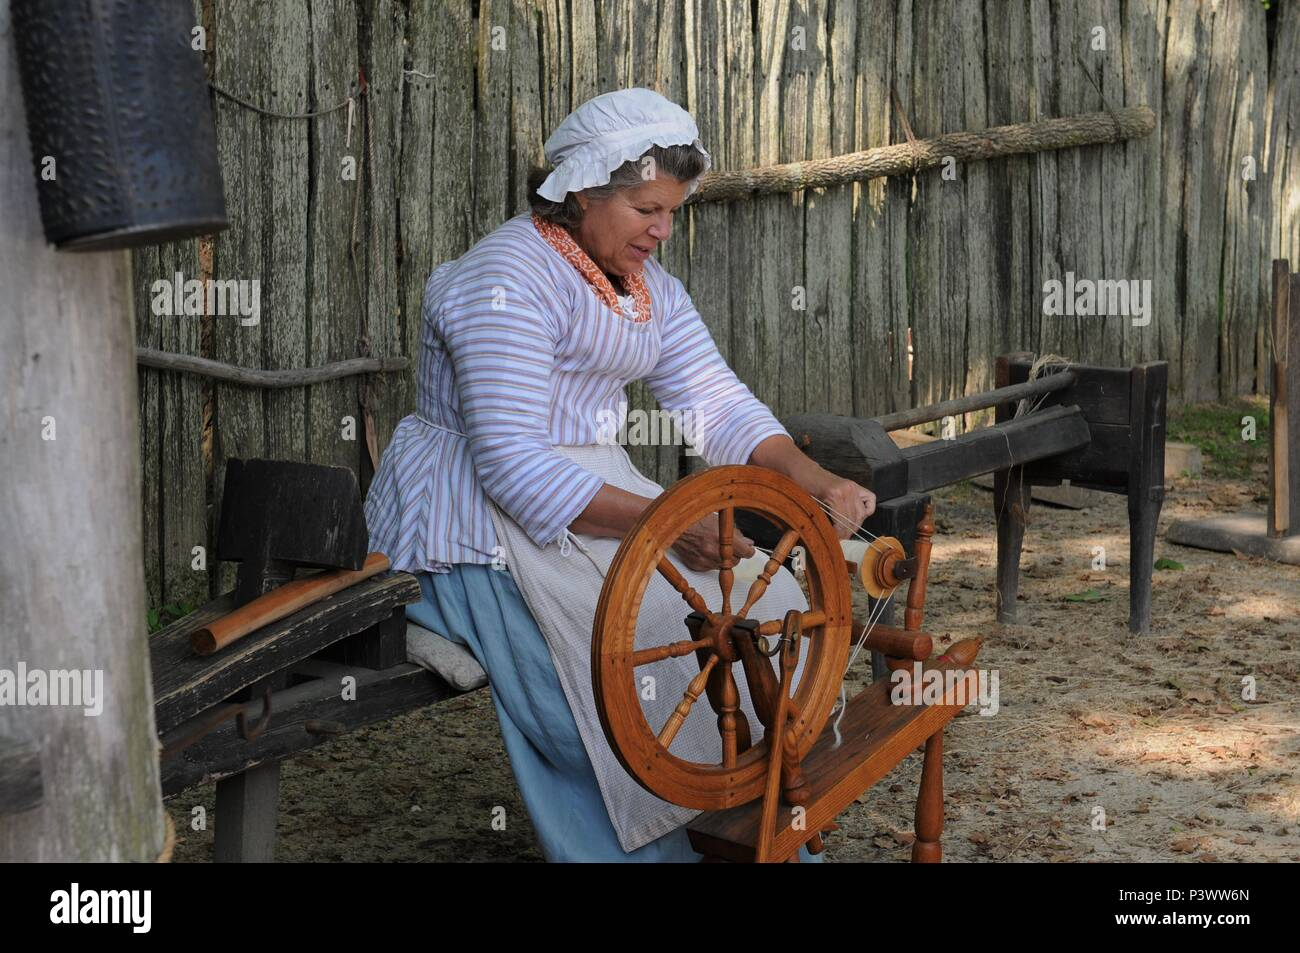 American pioneer spinning thread on a spinning wheel Stock Photo